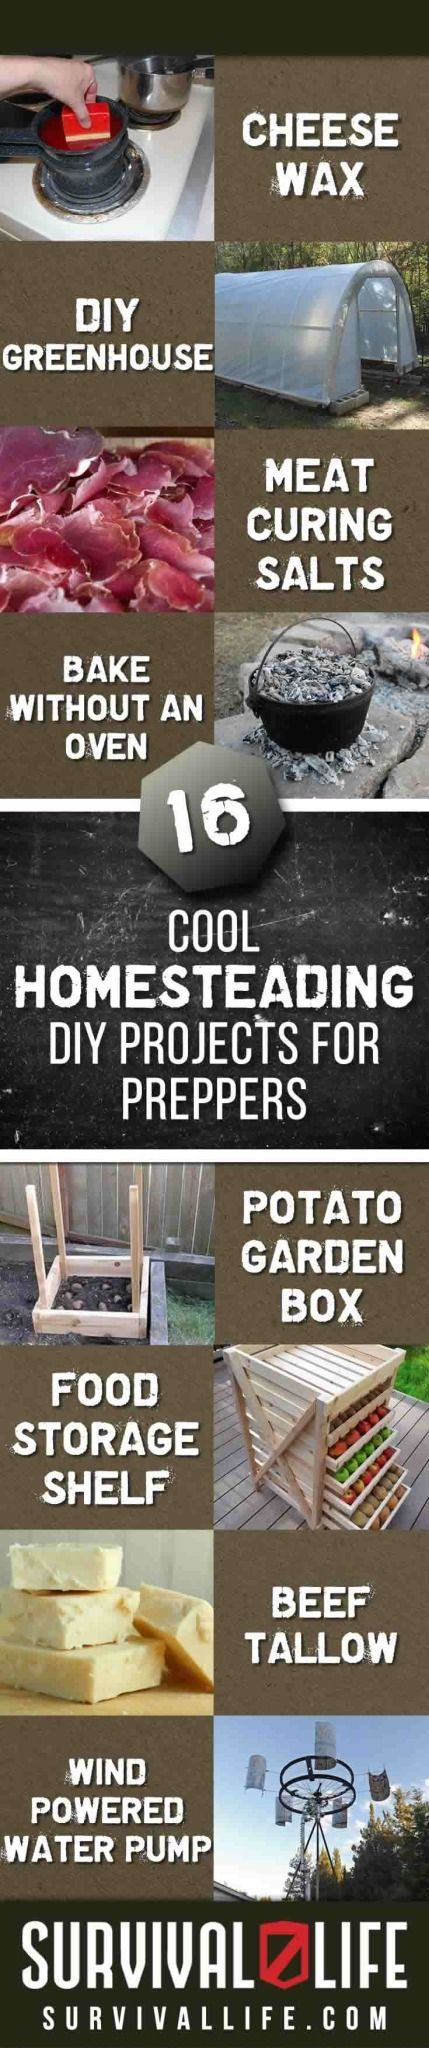 I have to do this Cool Homesteading DIY Projects For Preppers | Survival Life - Survival Life